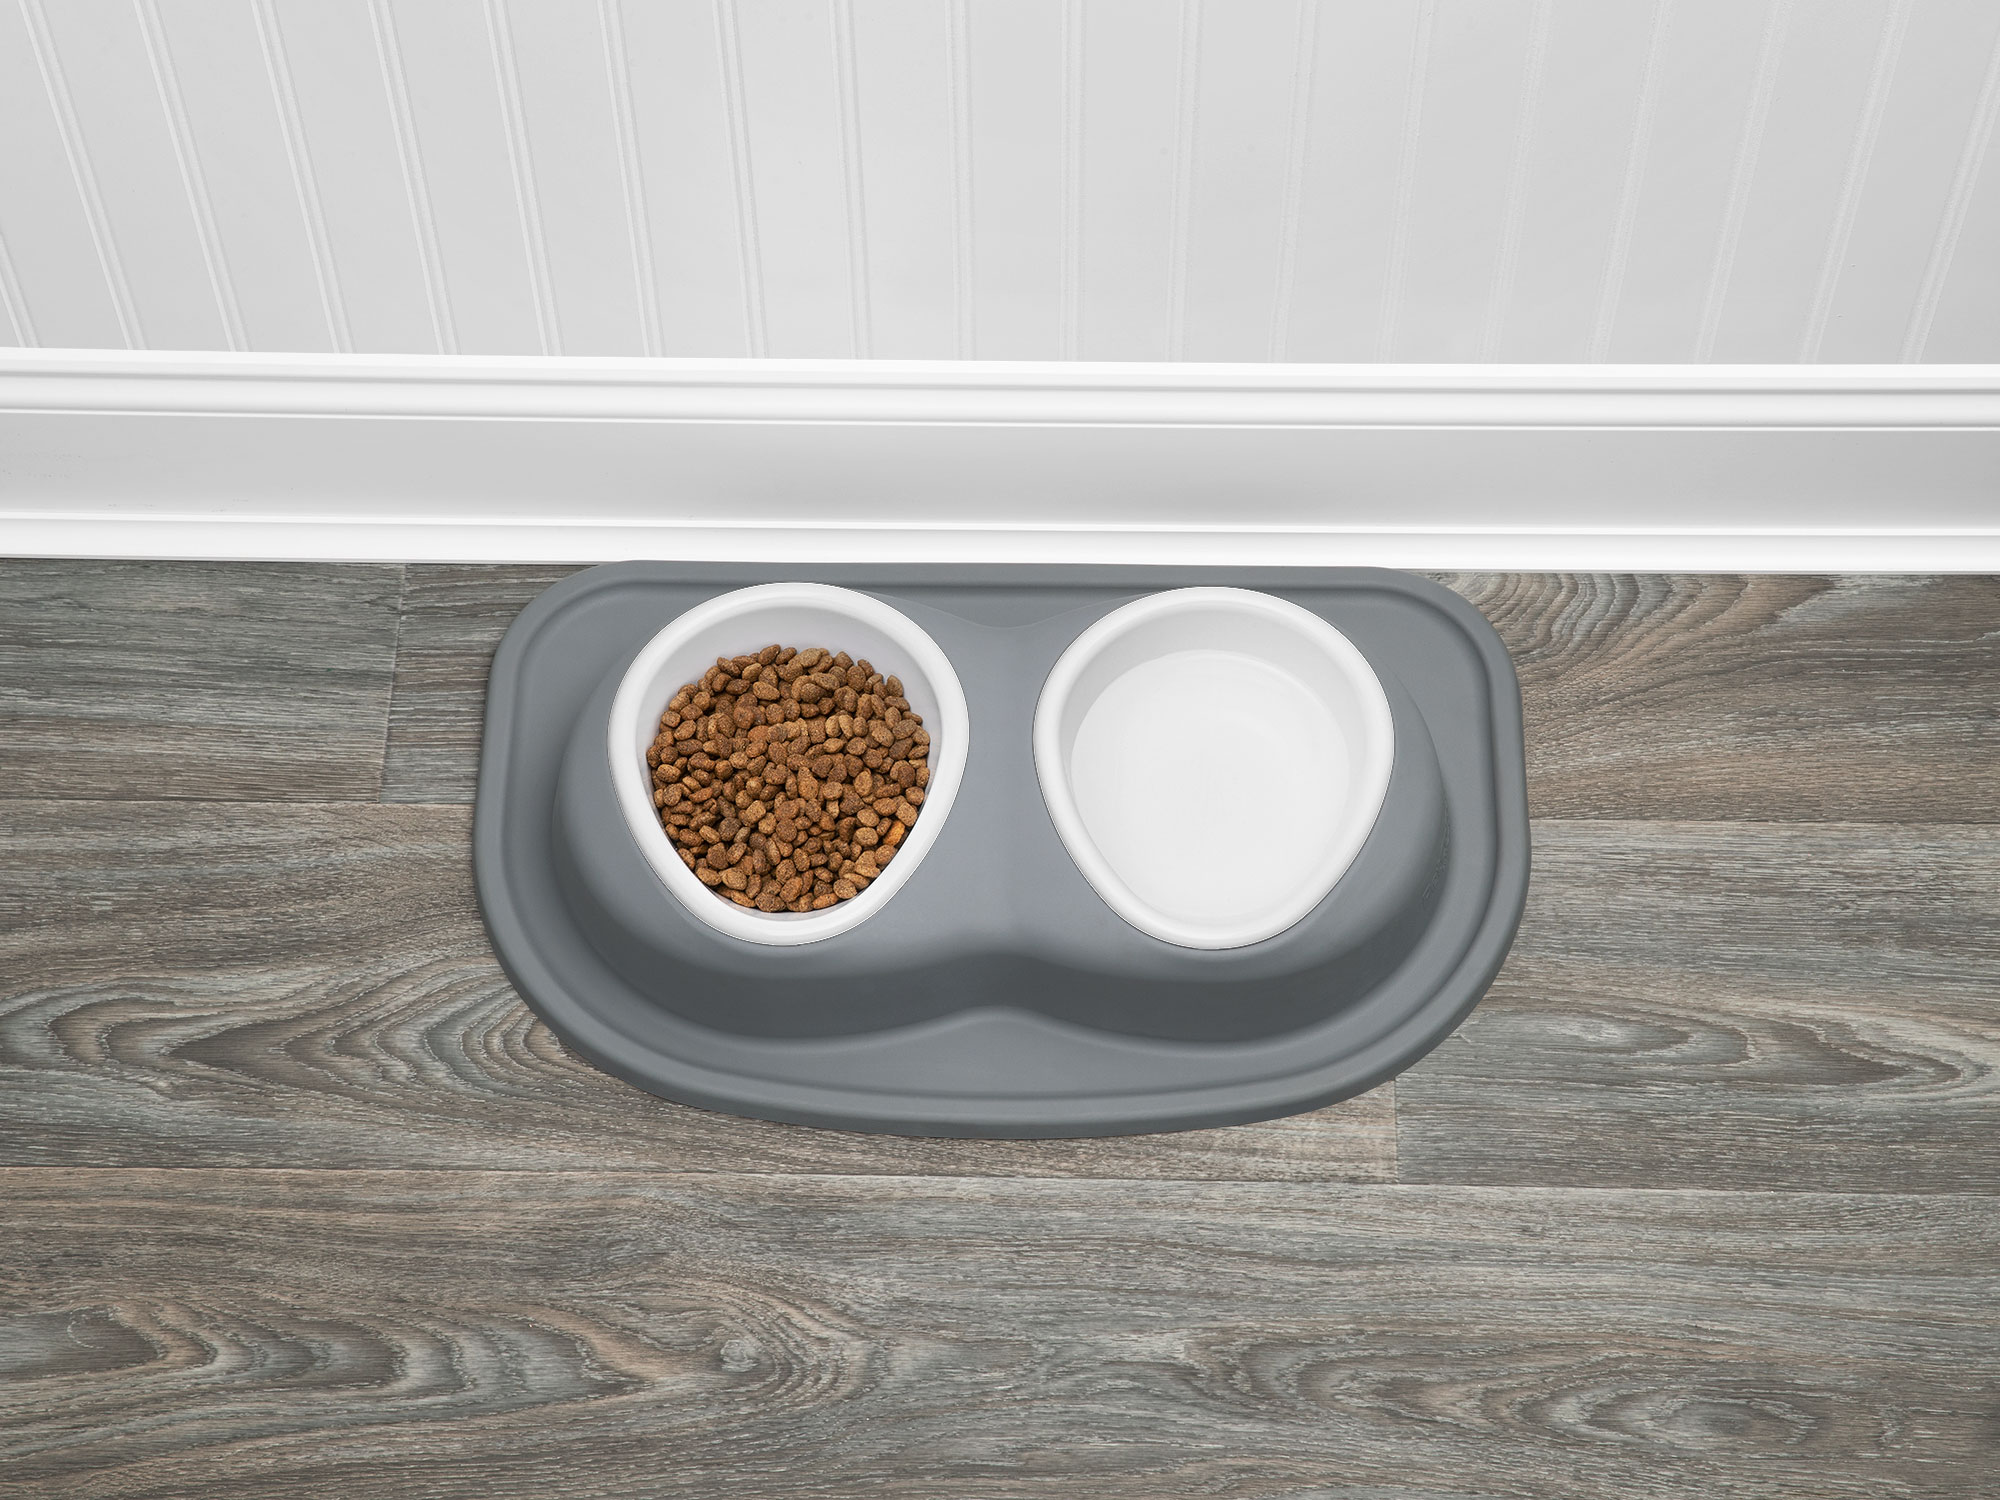 Grey Double Low Pet Feeding System with plastic bowls, filled with food and water for a dog.